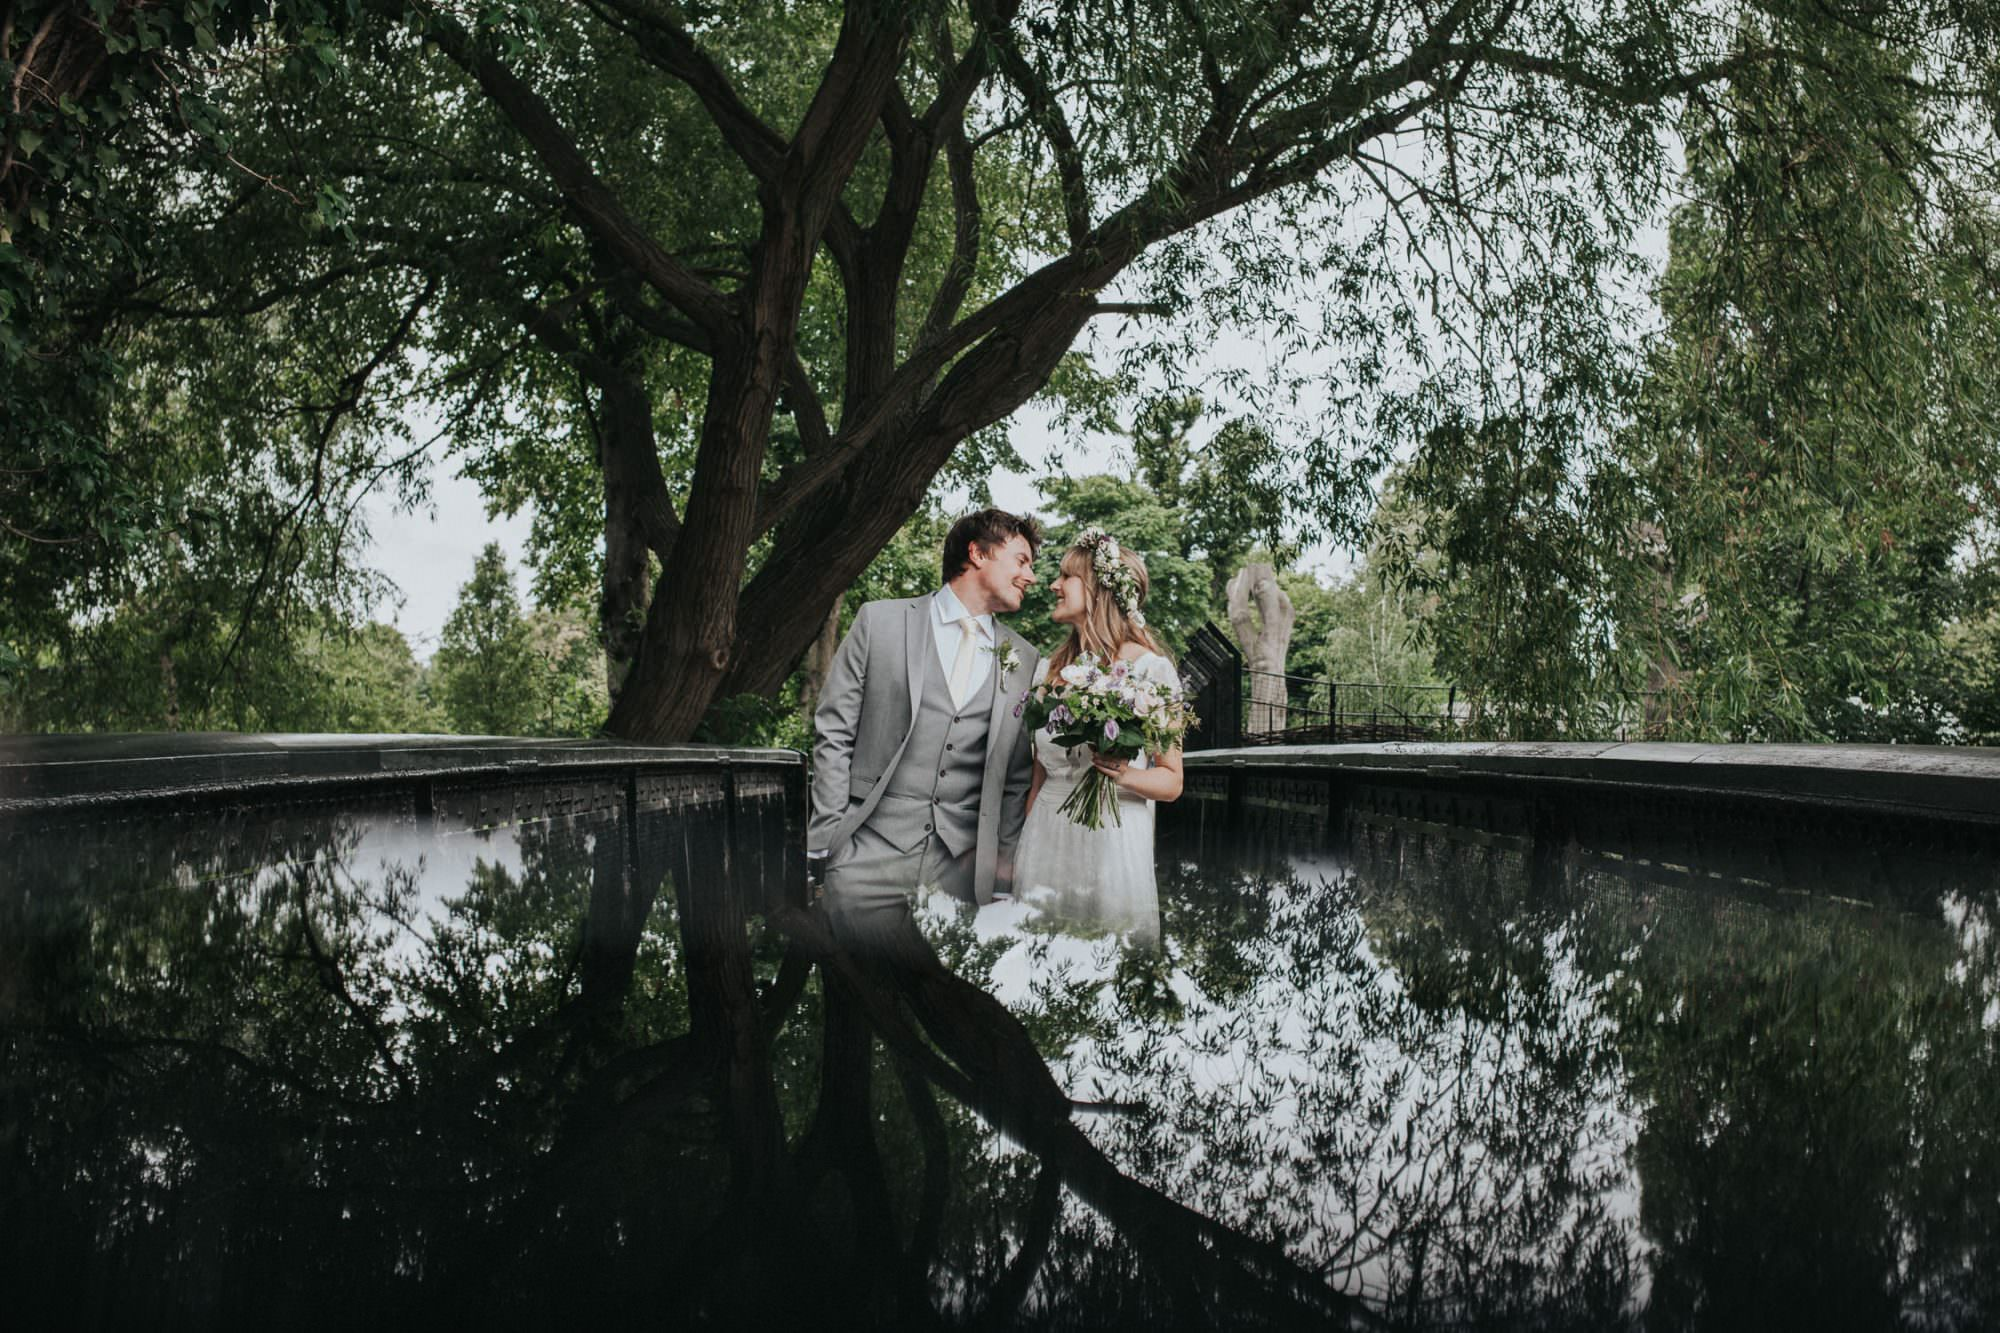 Alternative wedding photographer london - Clissold Park wedding